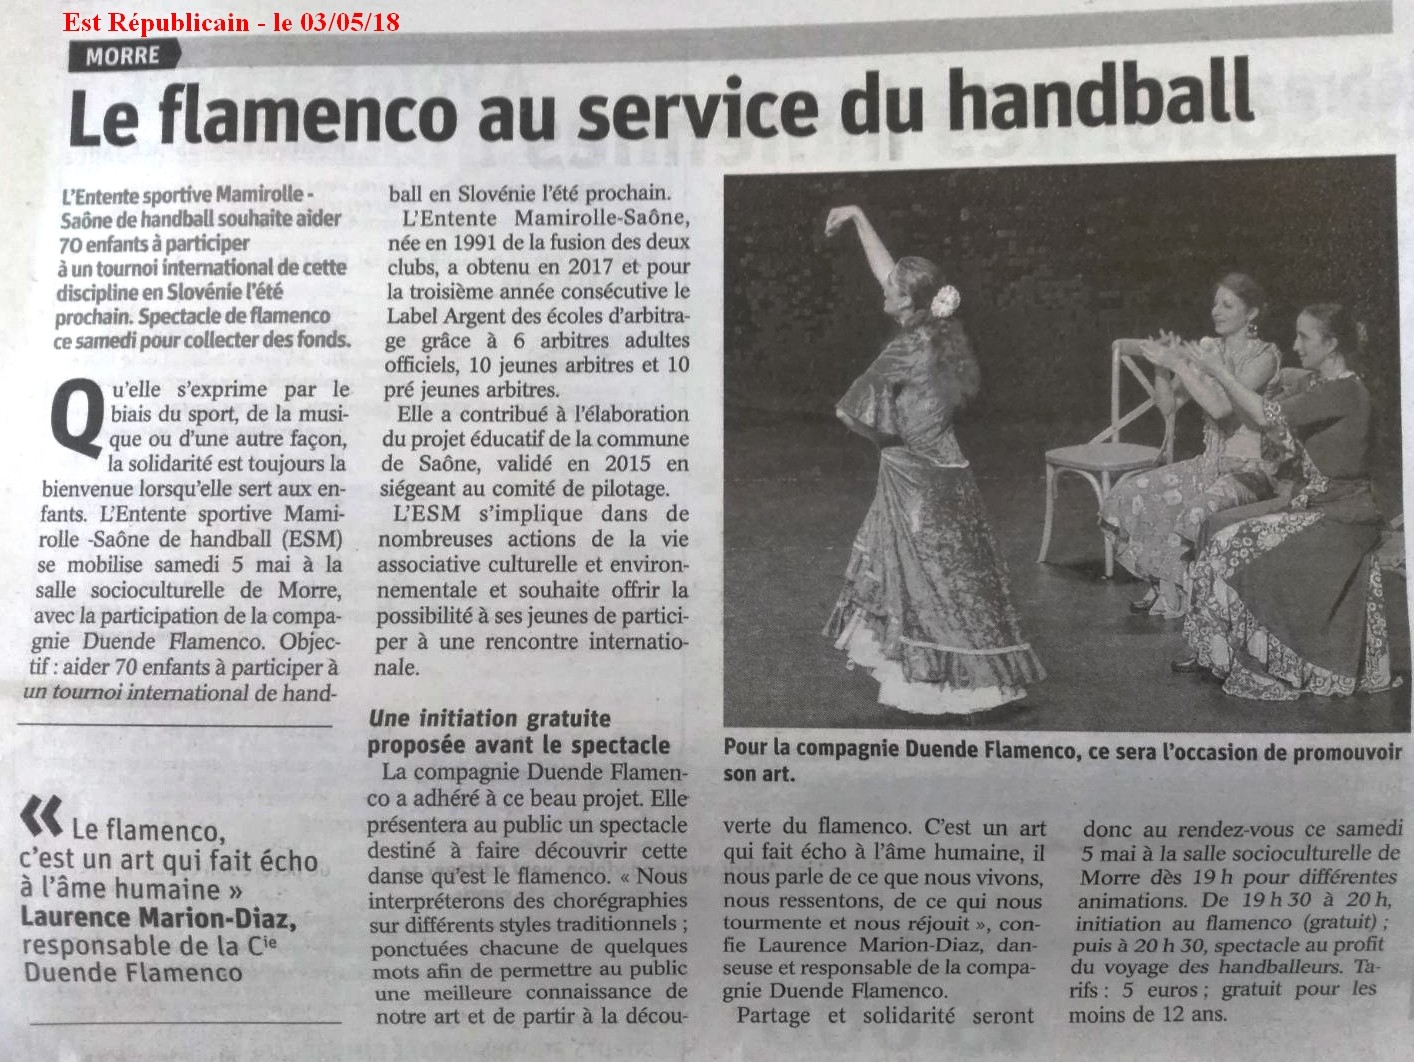 Article a la dec du flamenco est rep 030518